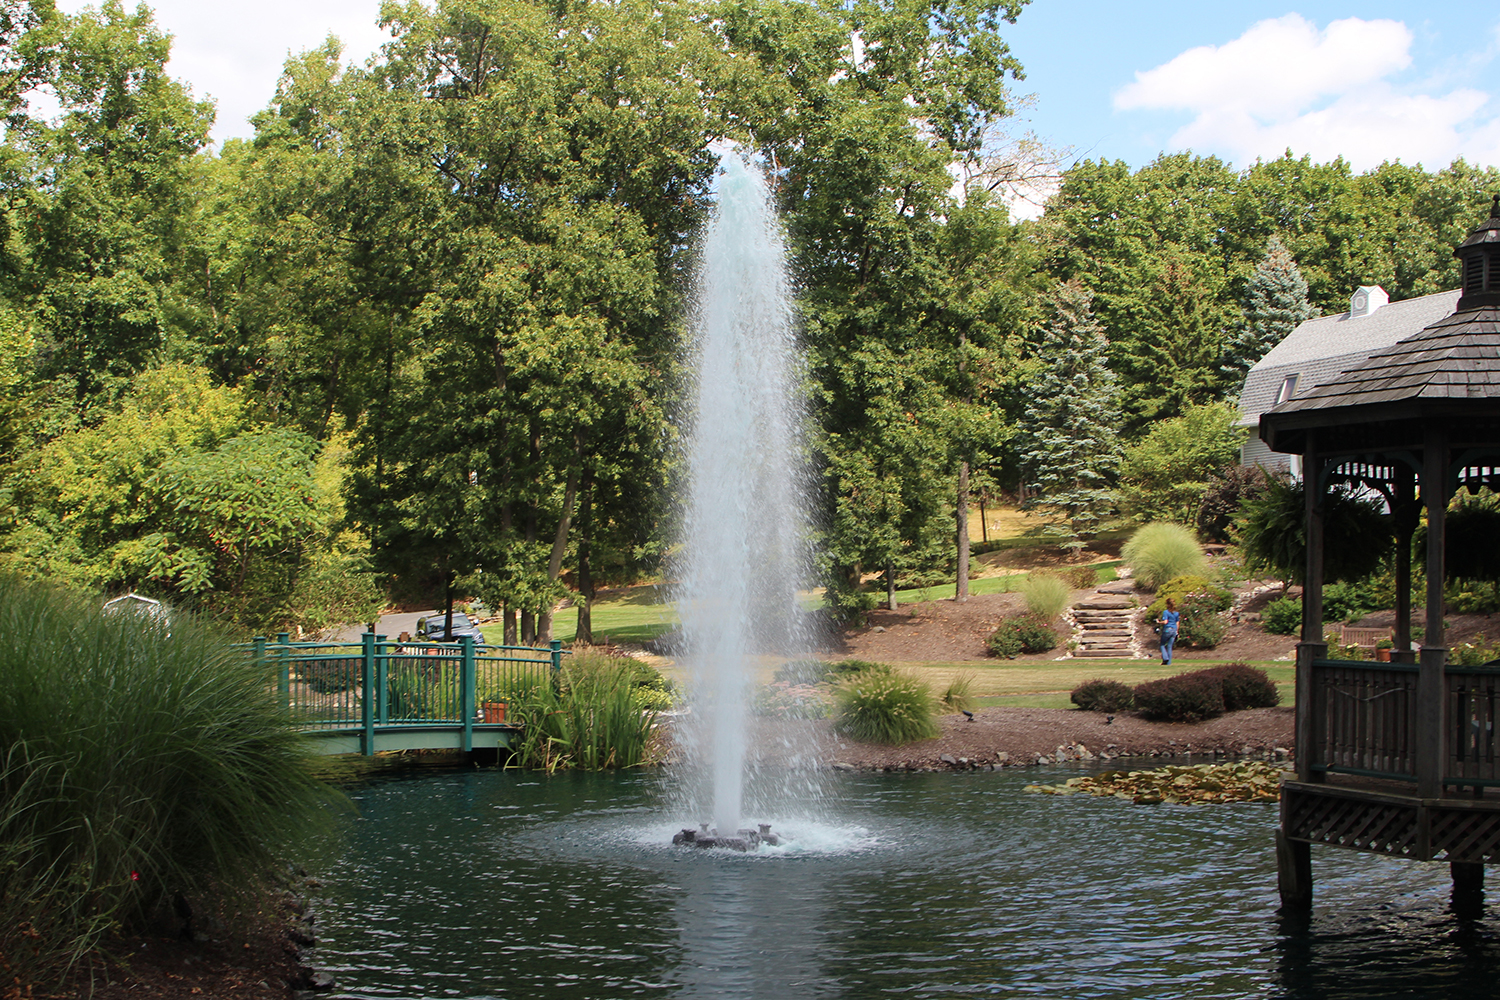 Otterbine's Comet Aerating Fountain